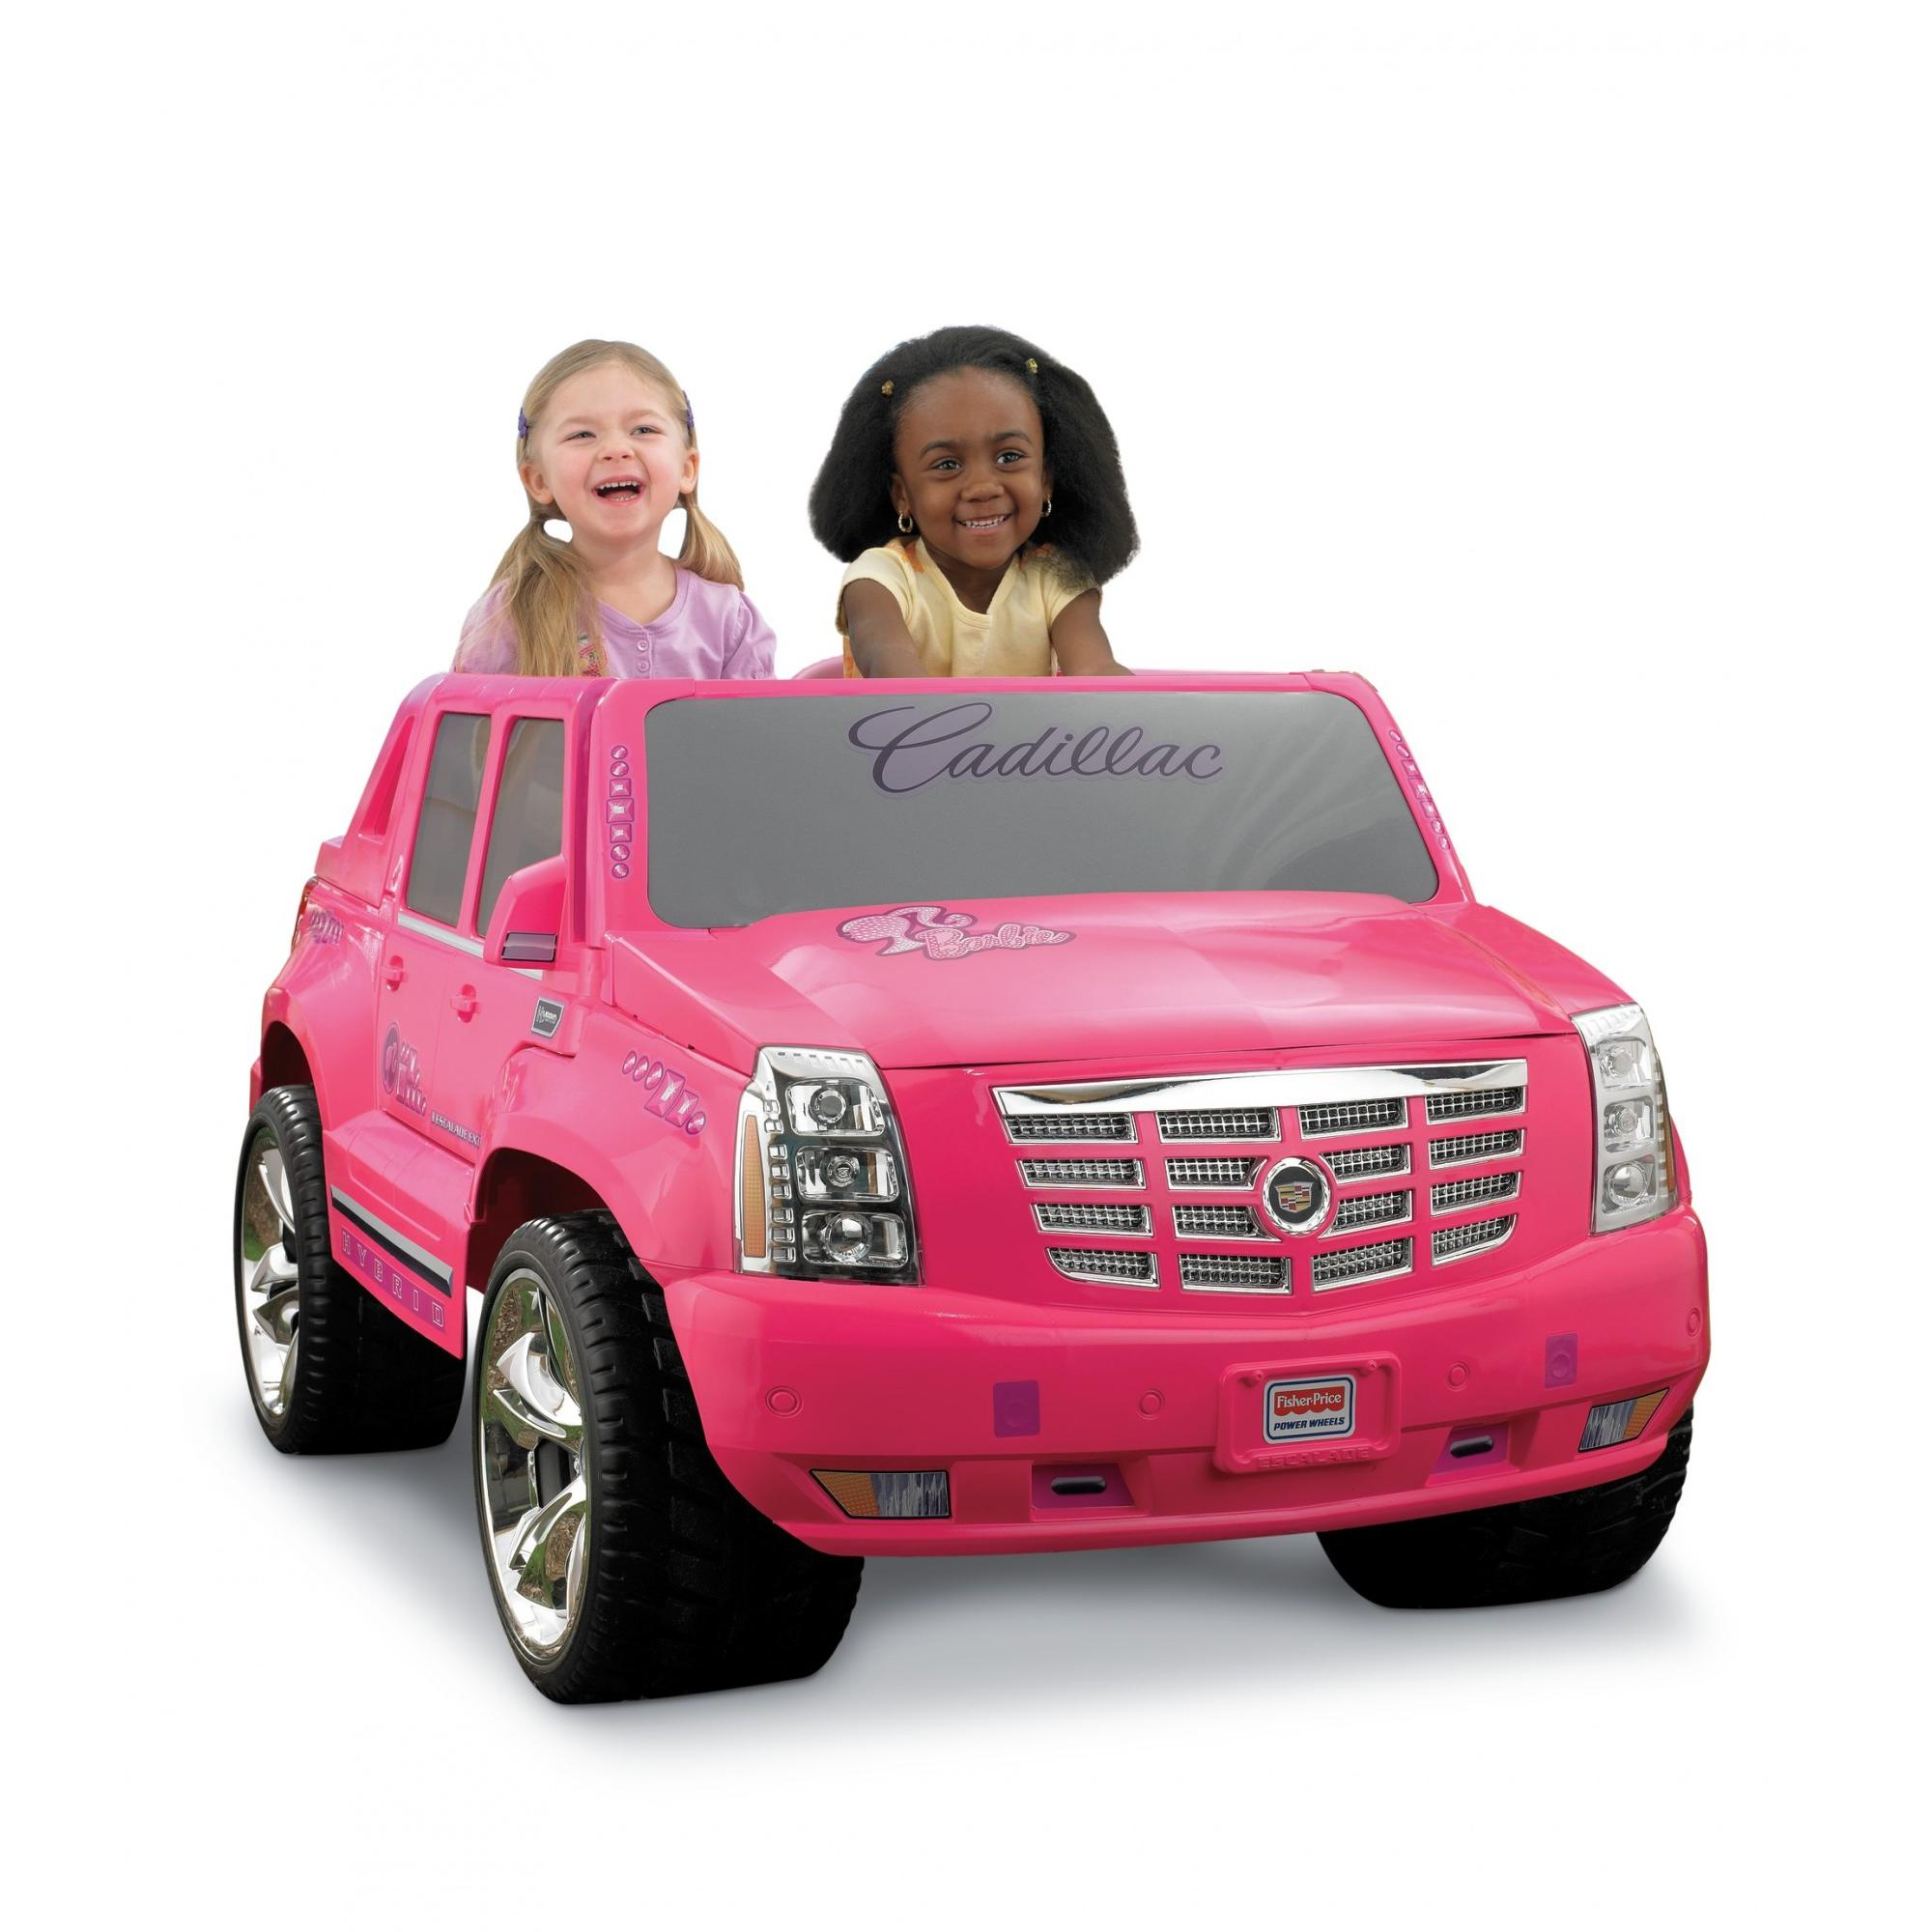 Buy Used Cadillac Escalade: Power Wheels Barbie Cadillac Hybrid Luxury Escalade, Pink